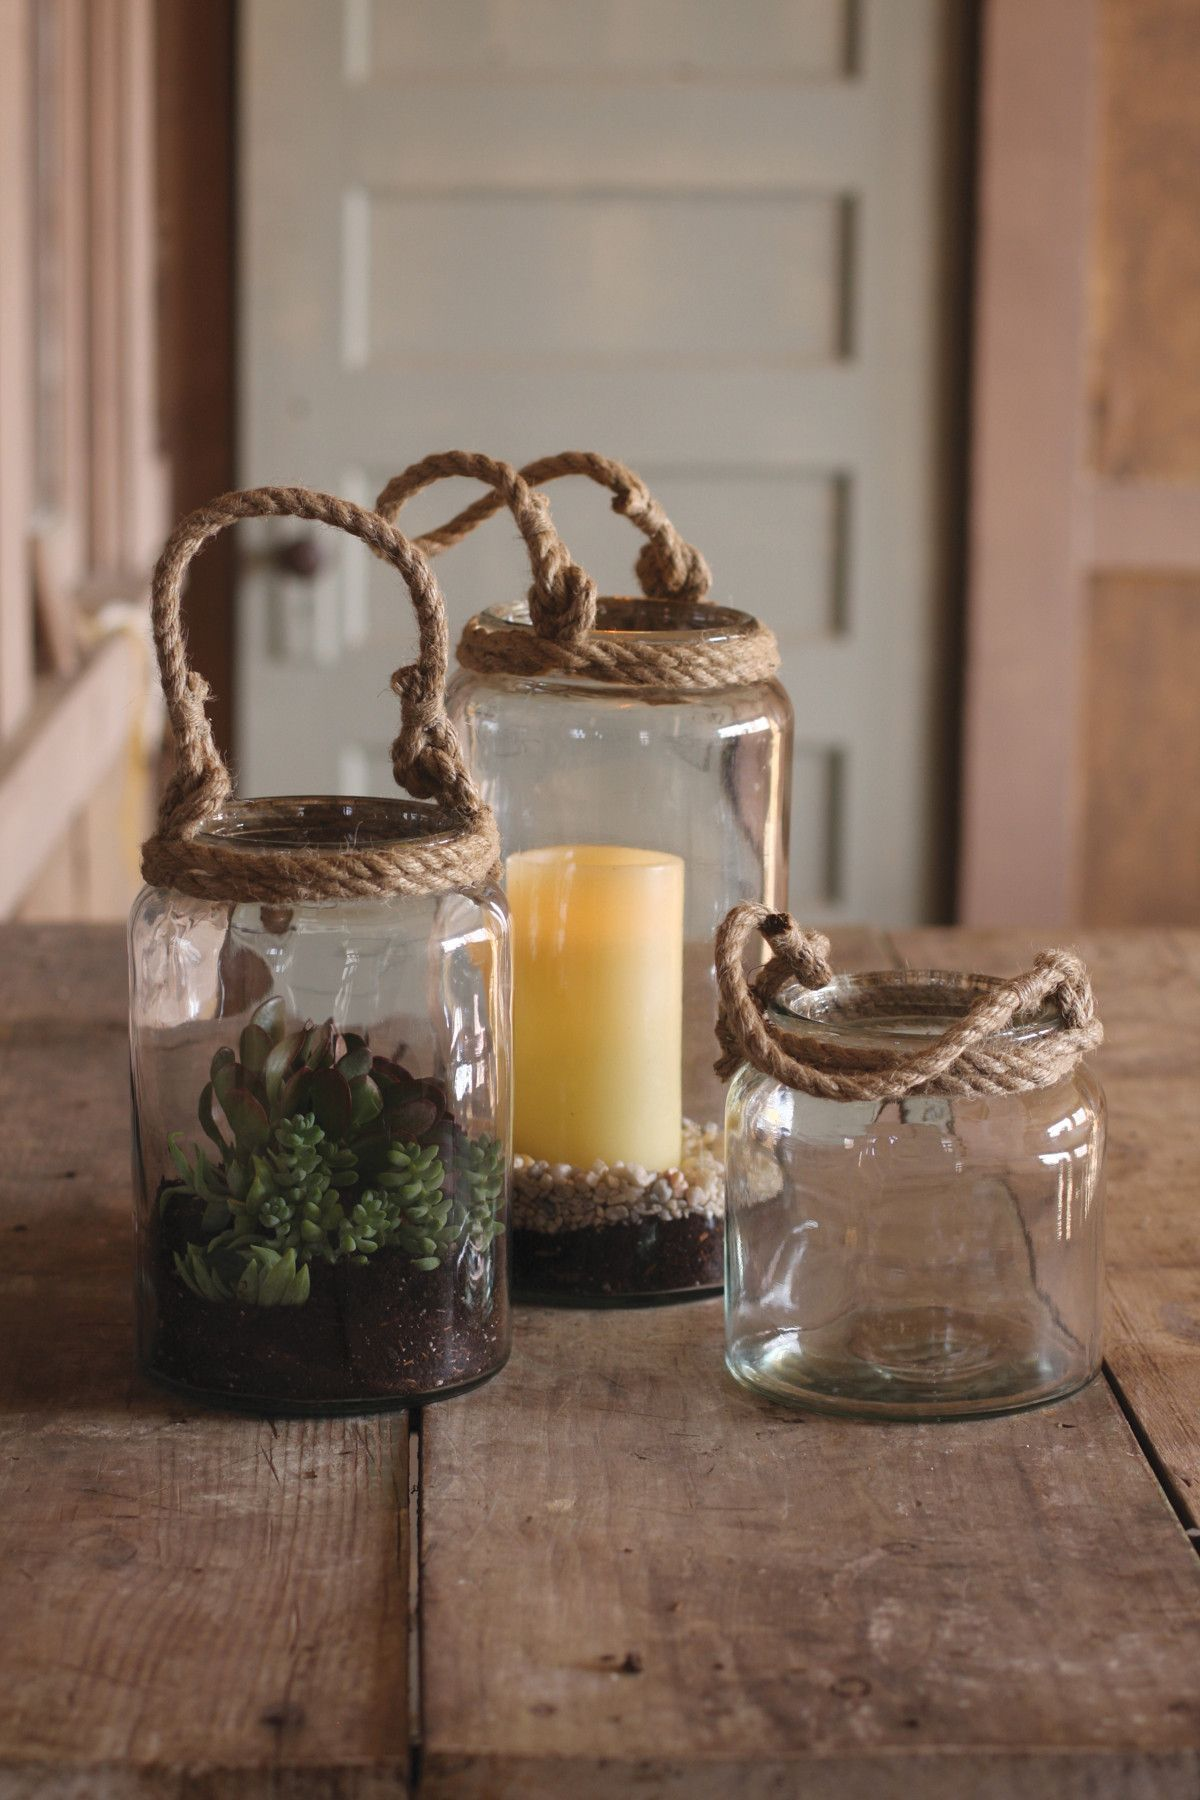 Kalalou Glass Candleholders With Rope Handles - Set Of 3 - With rope handles and a classic shape, these glass jars have an aesthetic that is both rustic and vintage. Dress them up with fresh succulents or illuminate your home with a new candle.